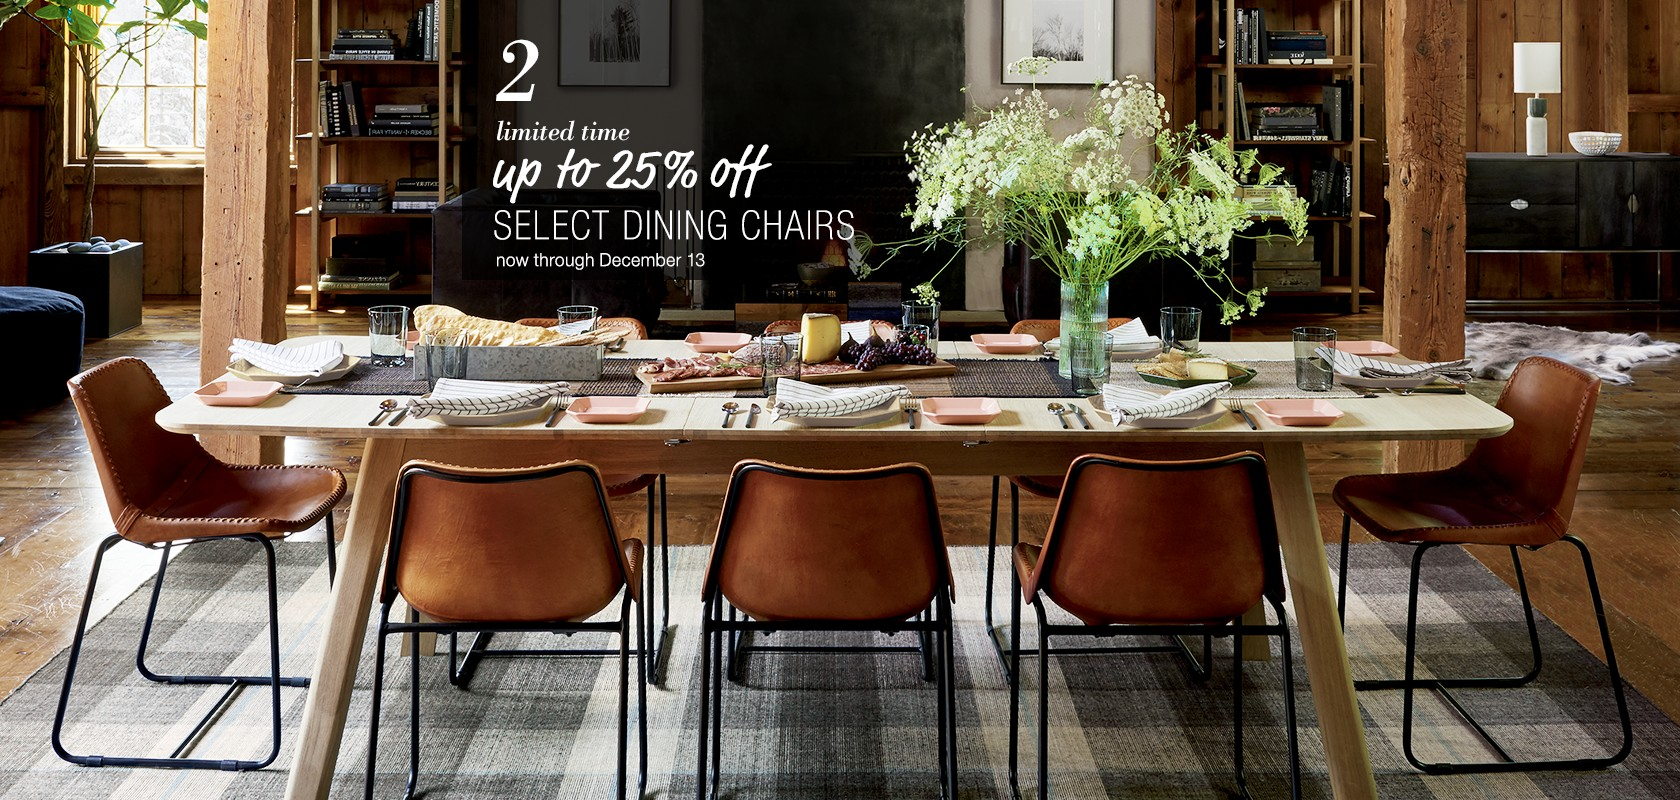 up to 25% off select dining chairs